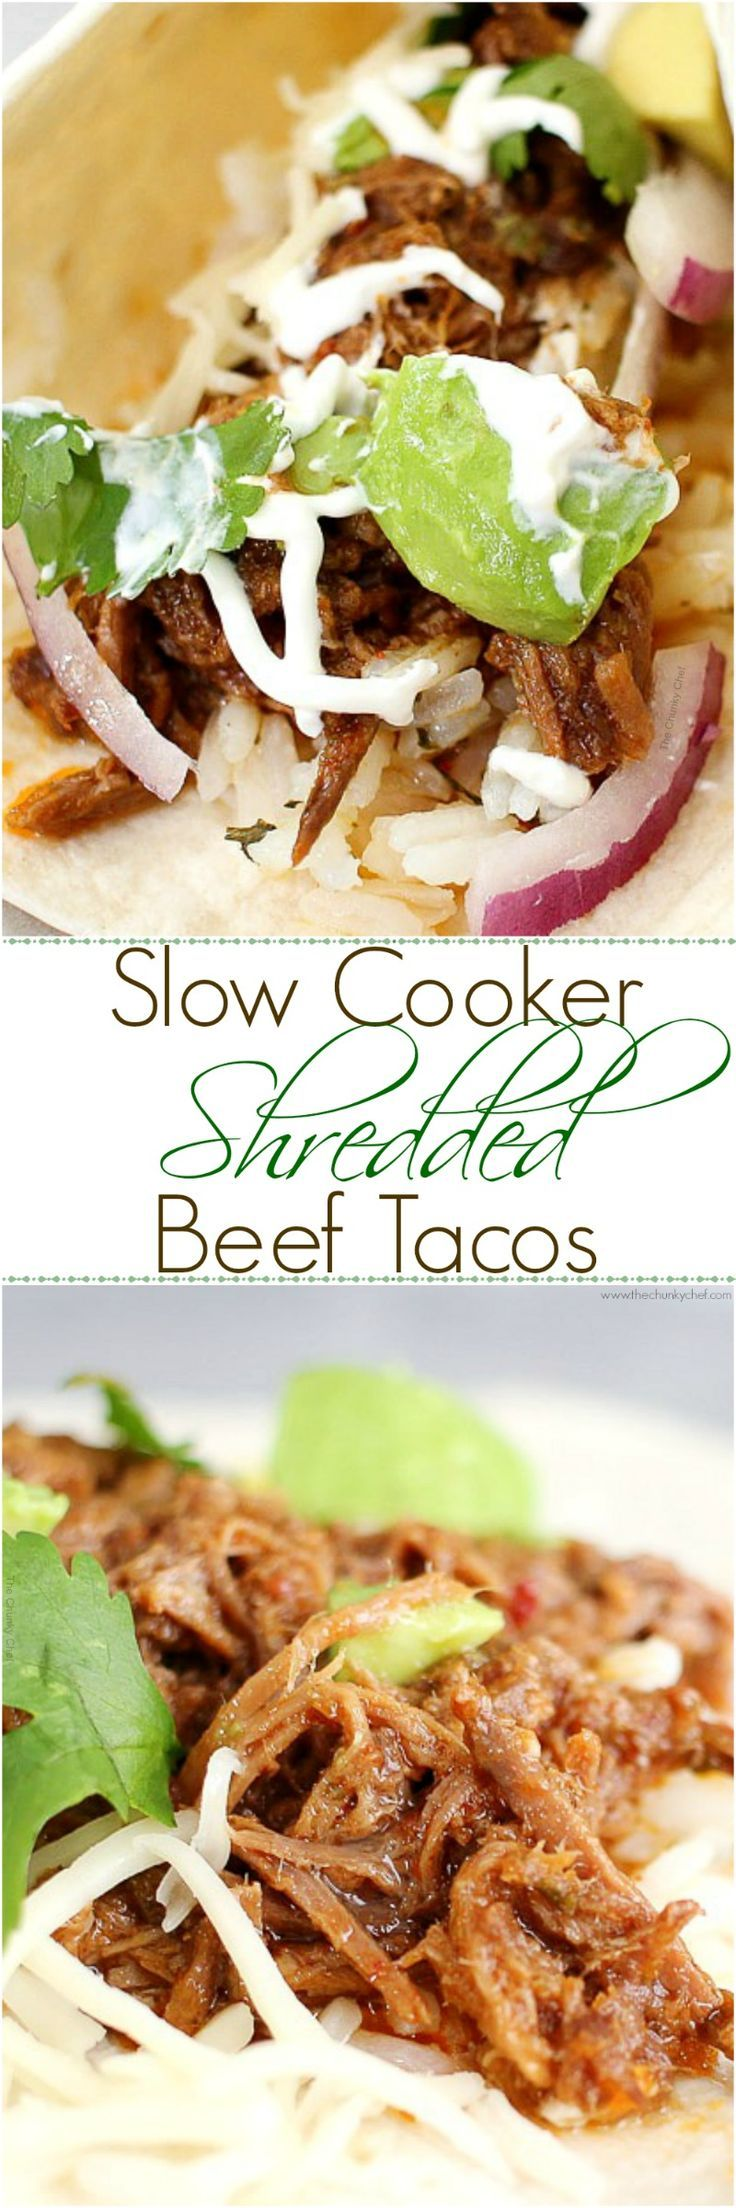 Perfect for Cinco de Mayo or any other occasion... these shredded beef tacos are amazing! The slow cooker makes these so tender and flavorful!